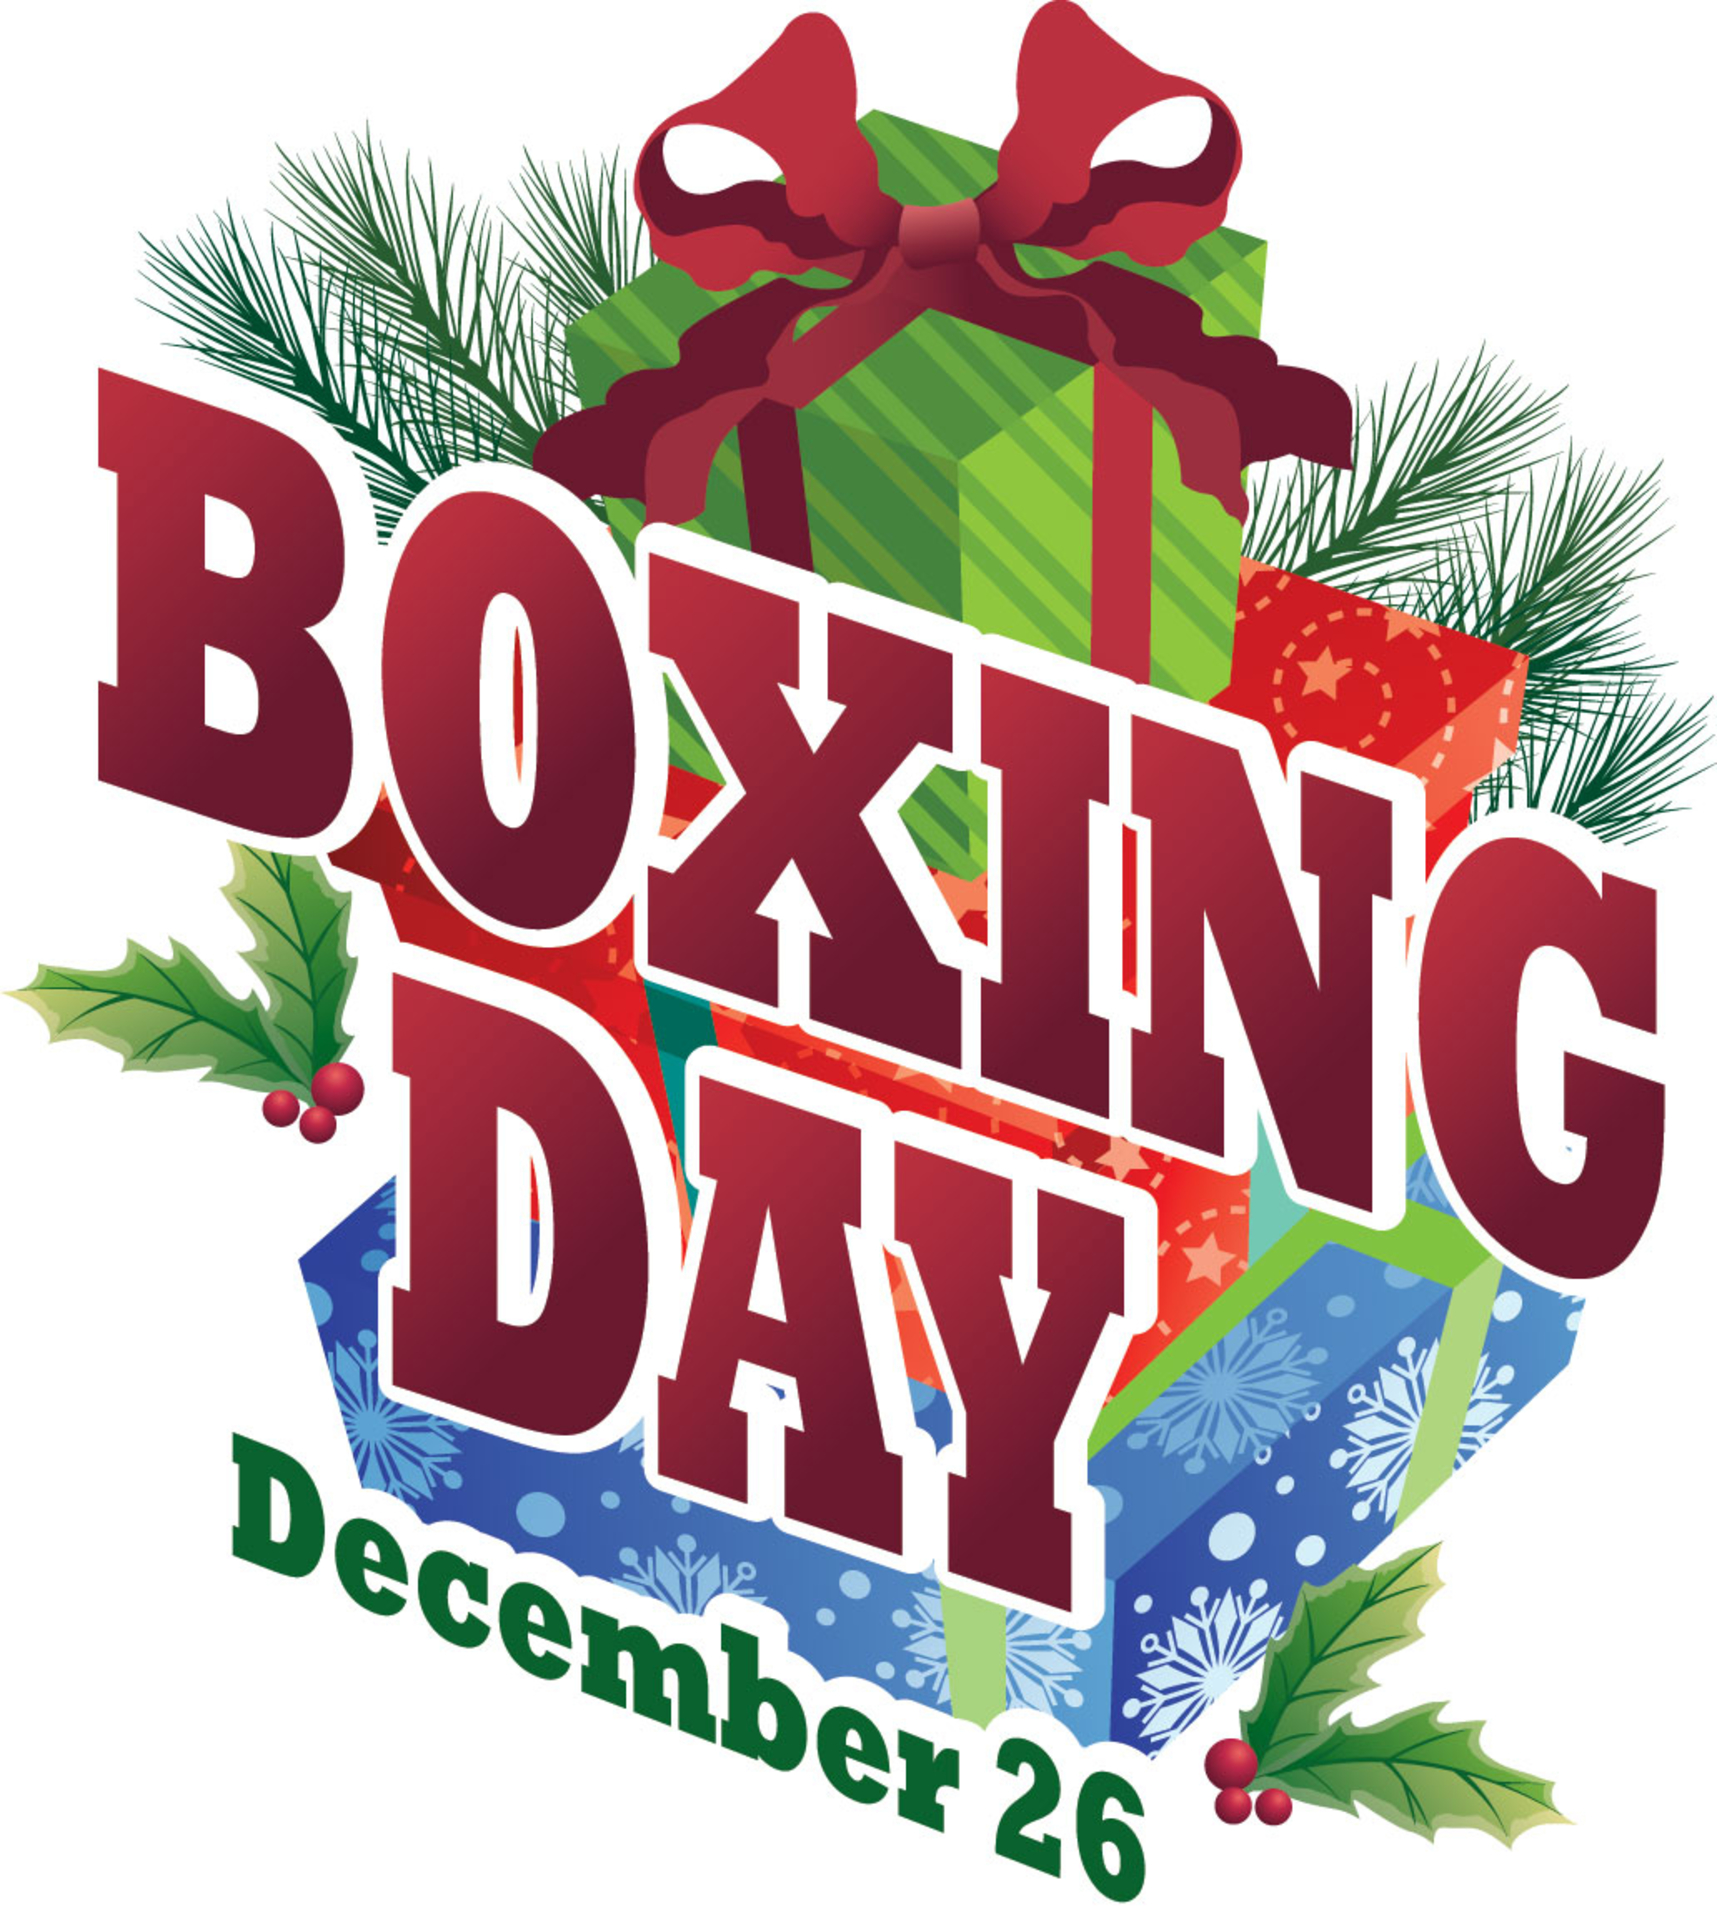 Boxing Day Deals And Offers Tips image